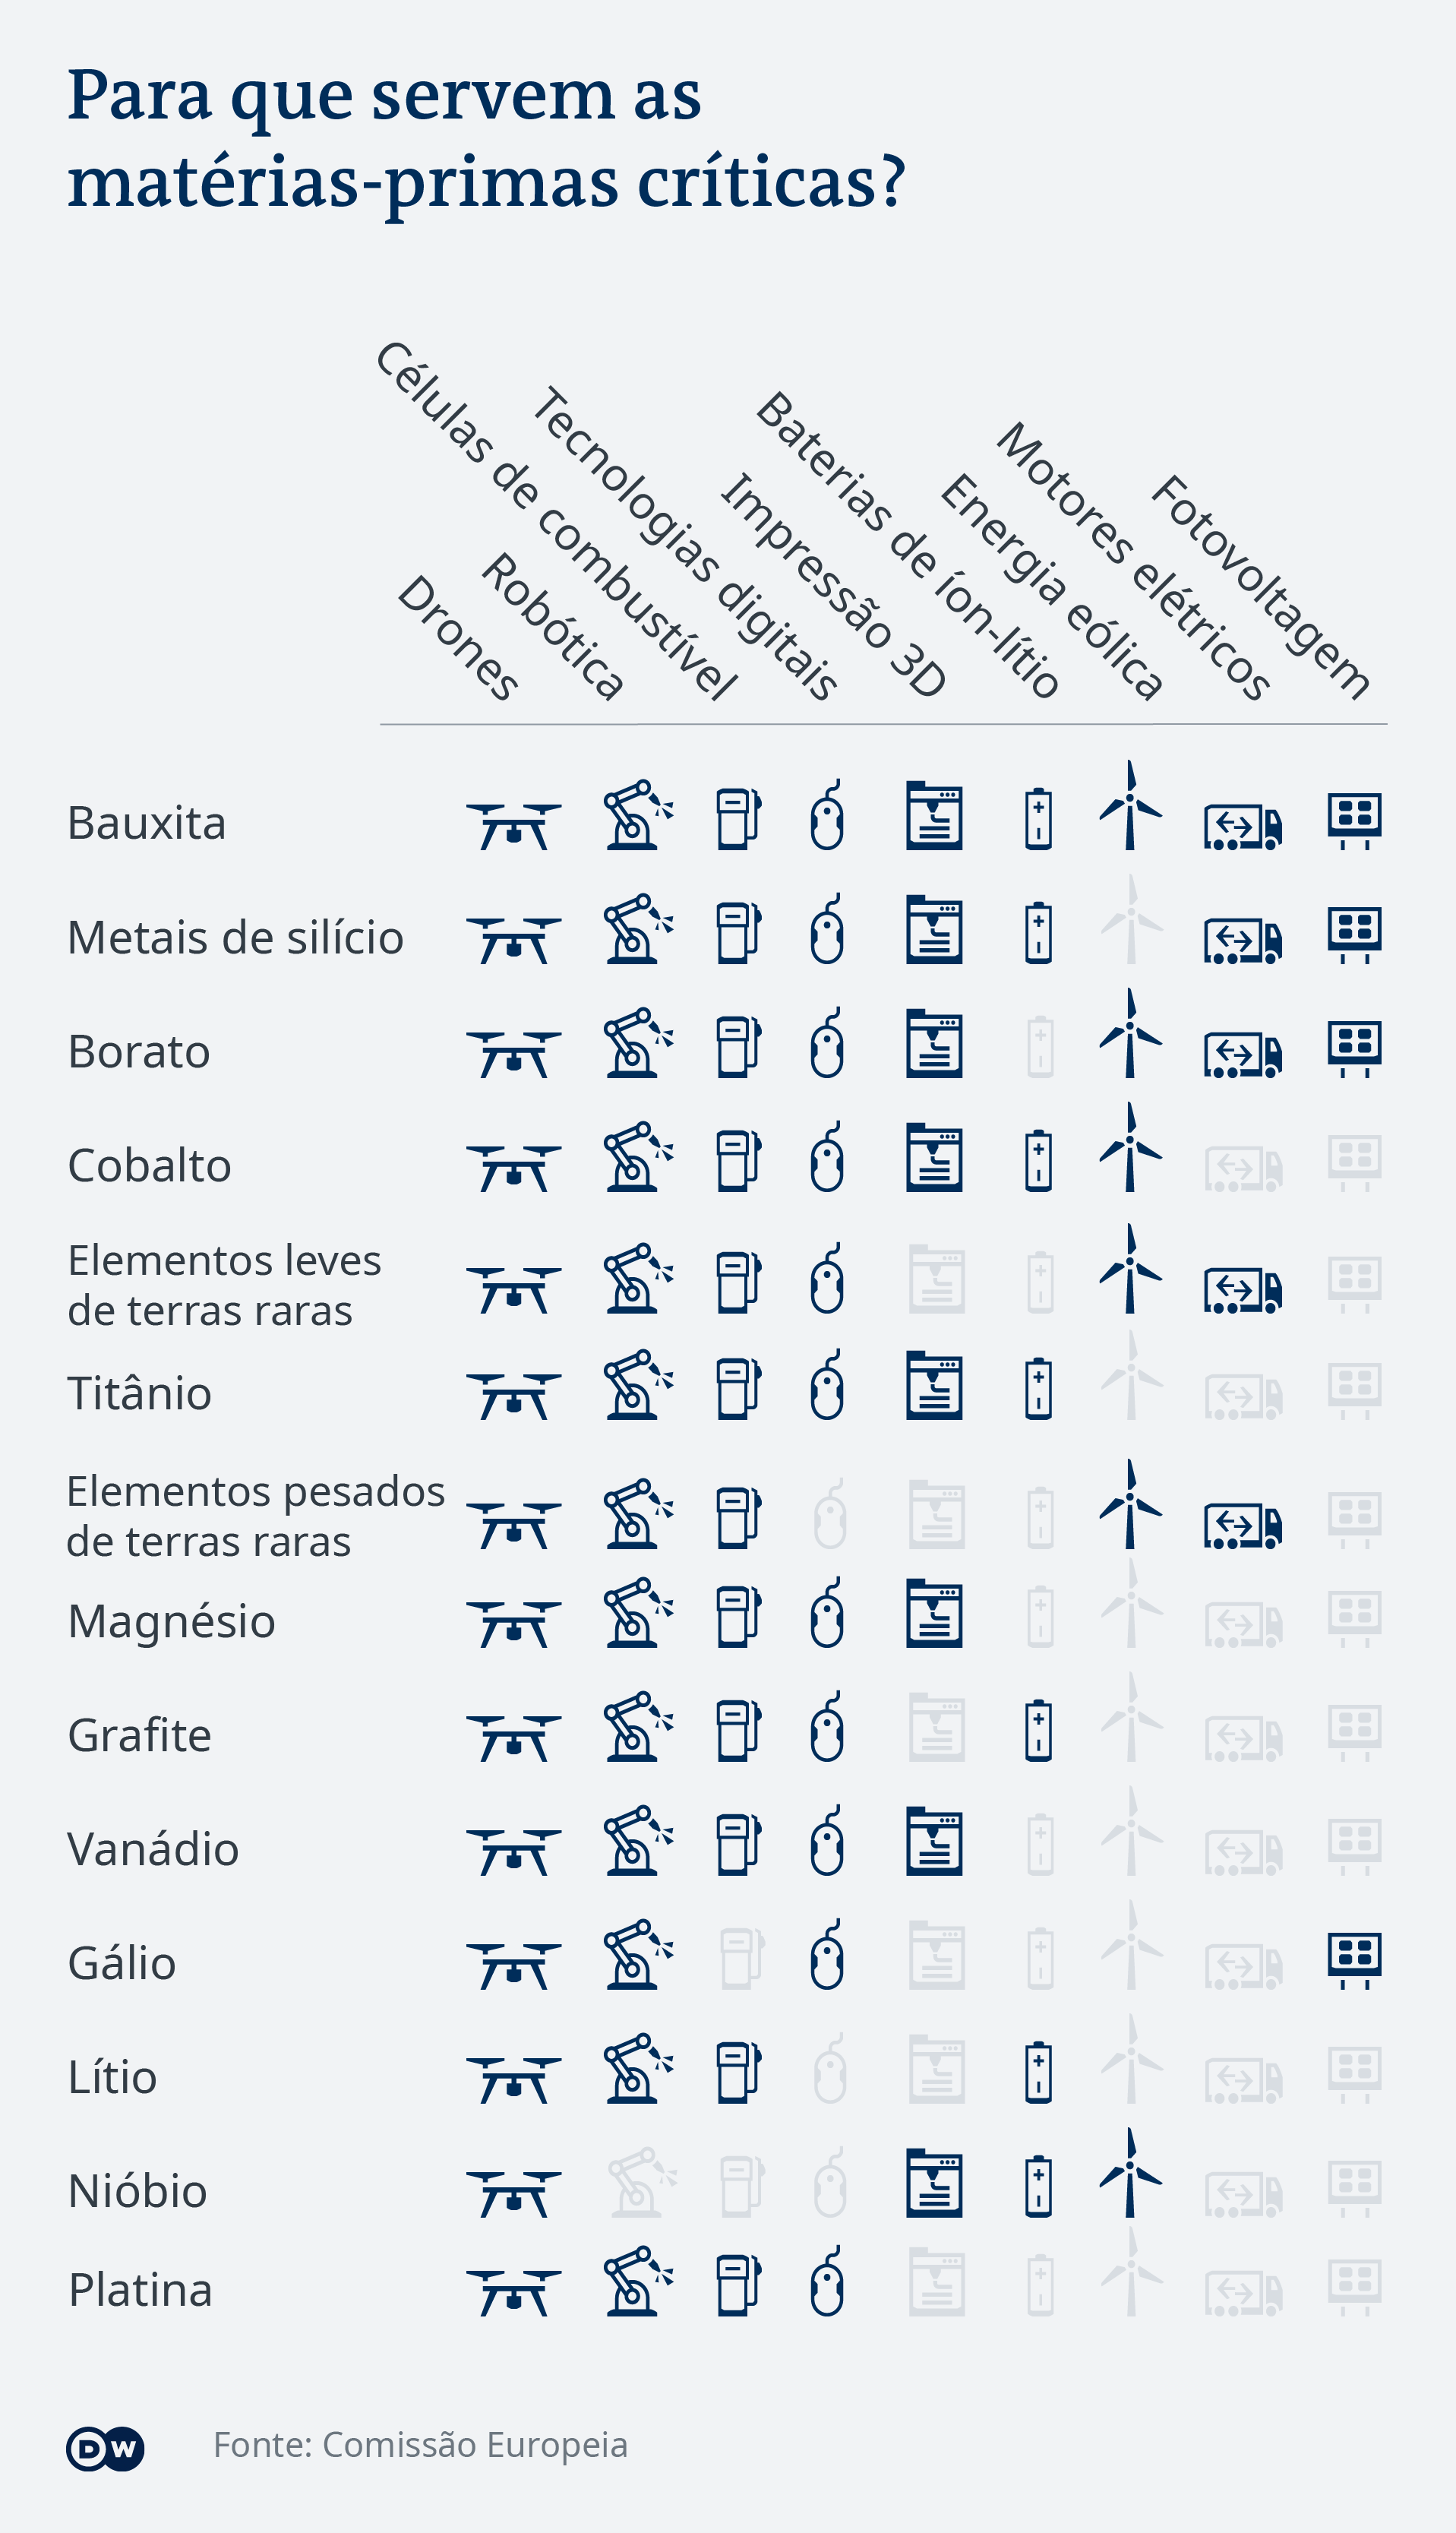 Data visualization: What are critical raw materials good for? - Portuguese (Brazil)